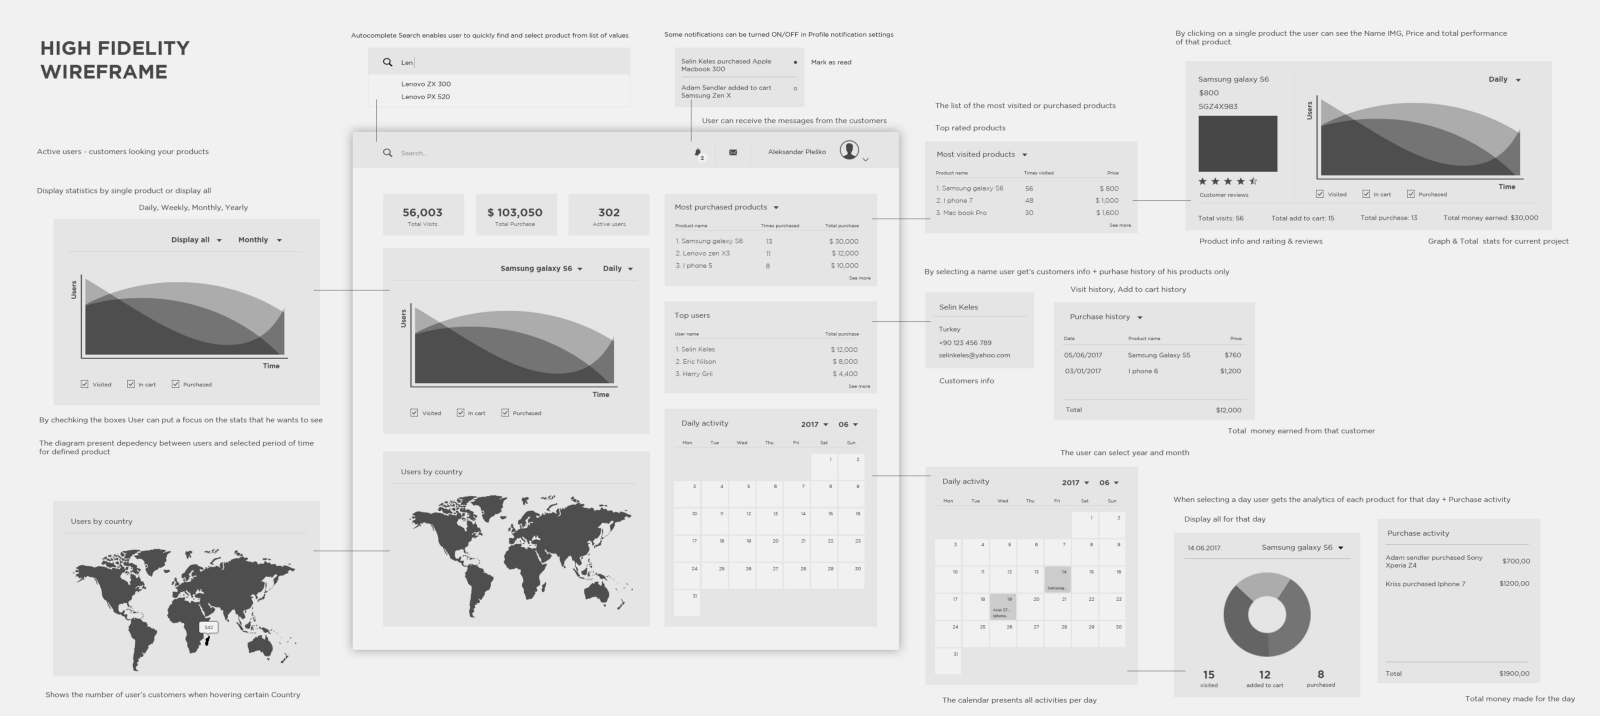 High-fidelity wireframe with charts and graphs (source: Aleksander)